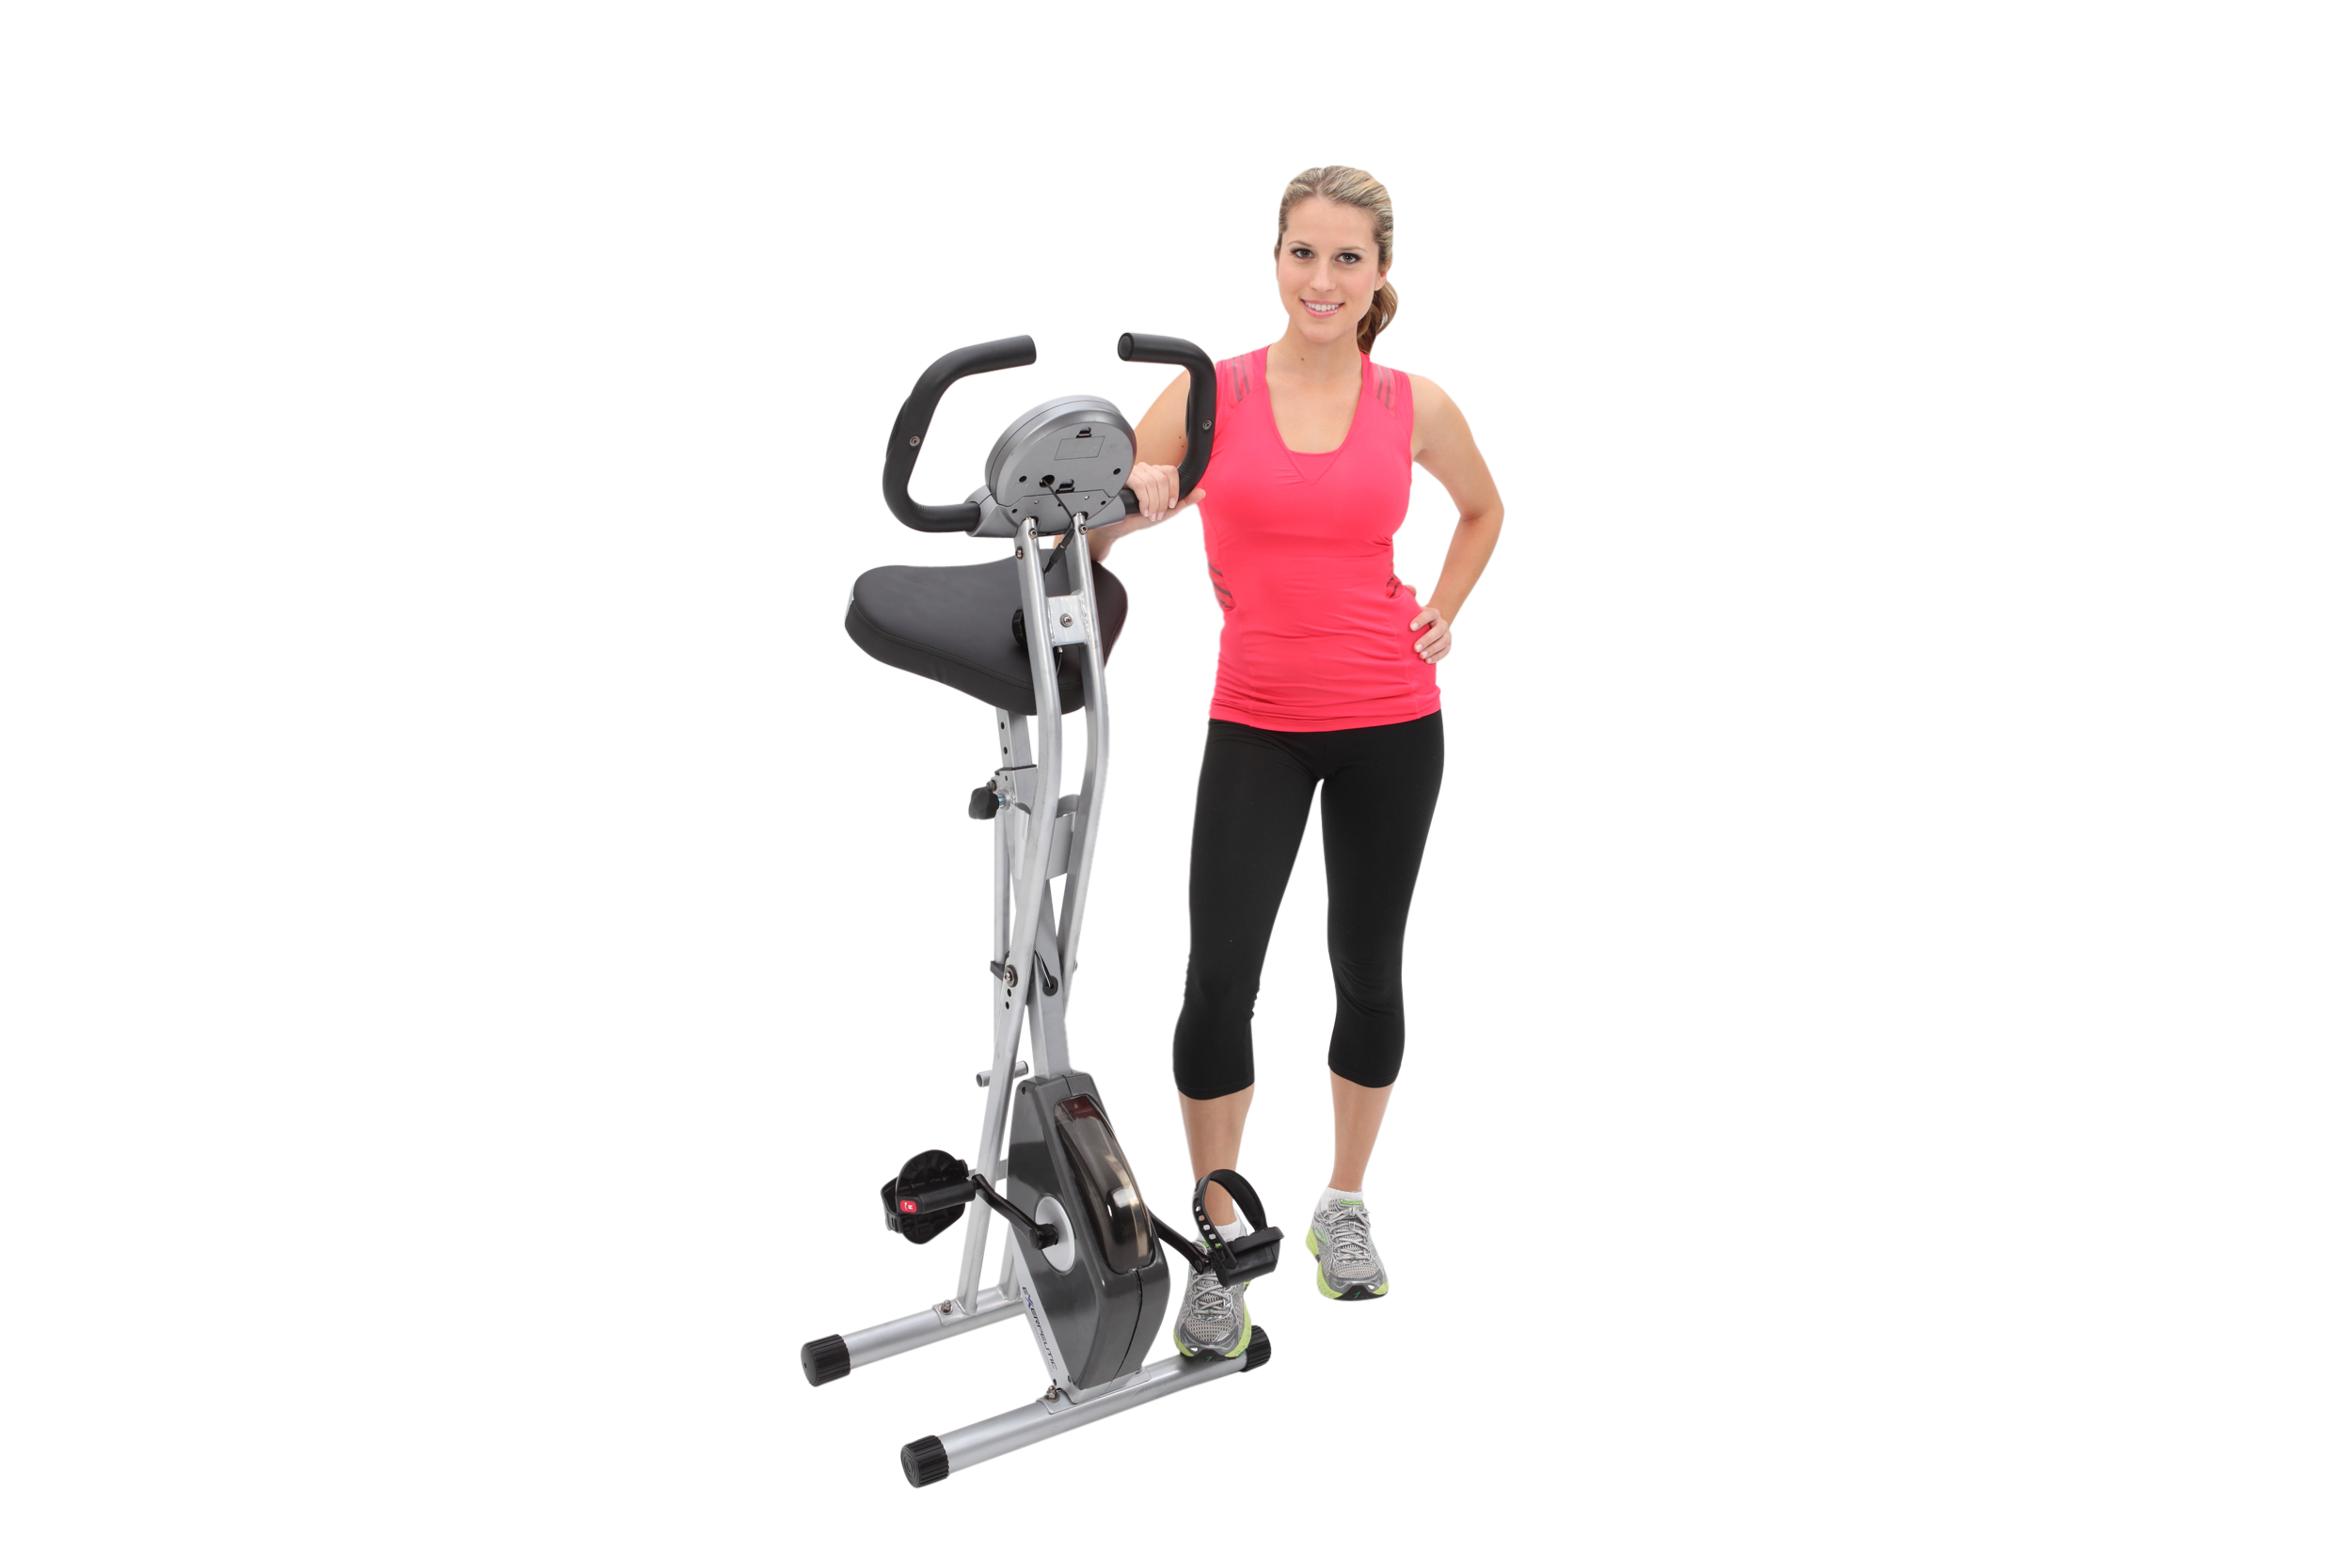 Exerpeutic 250XL Upright Bike with Pulse Grips